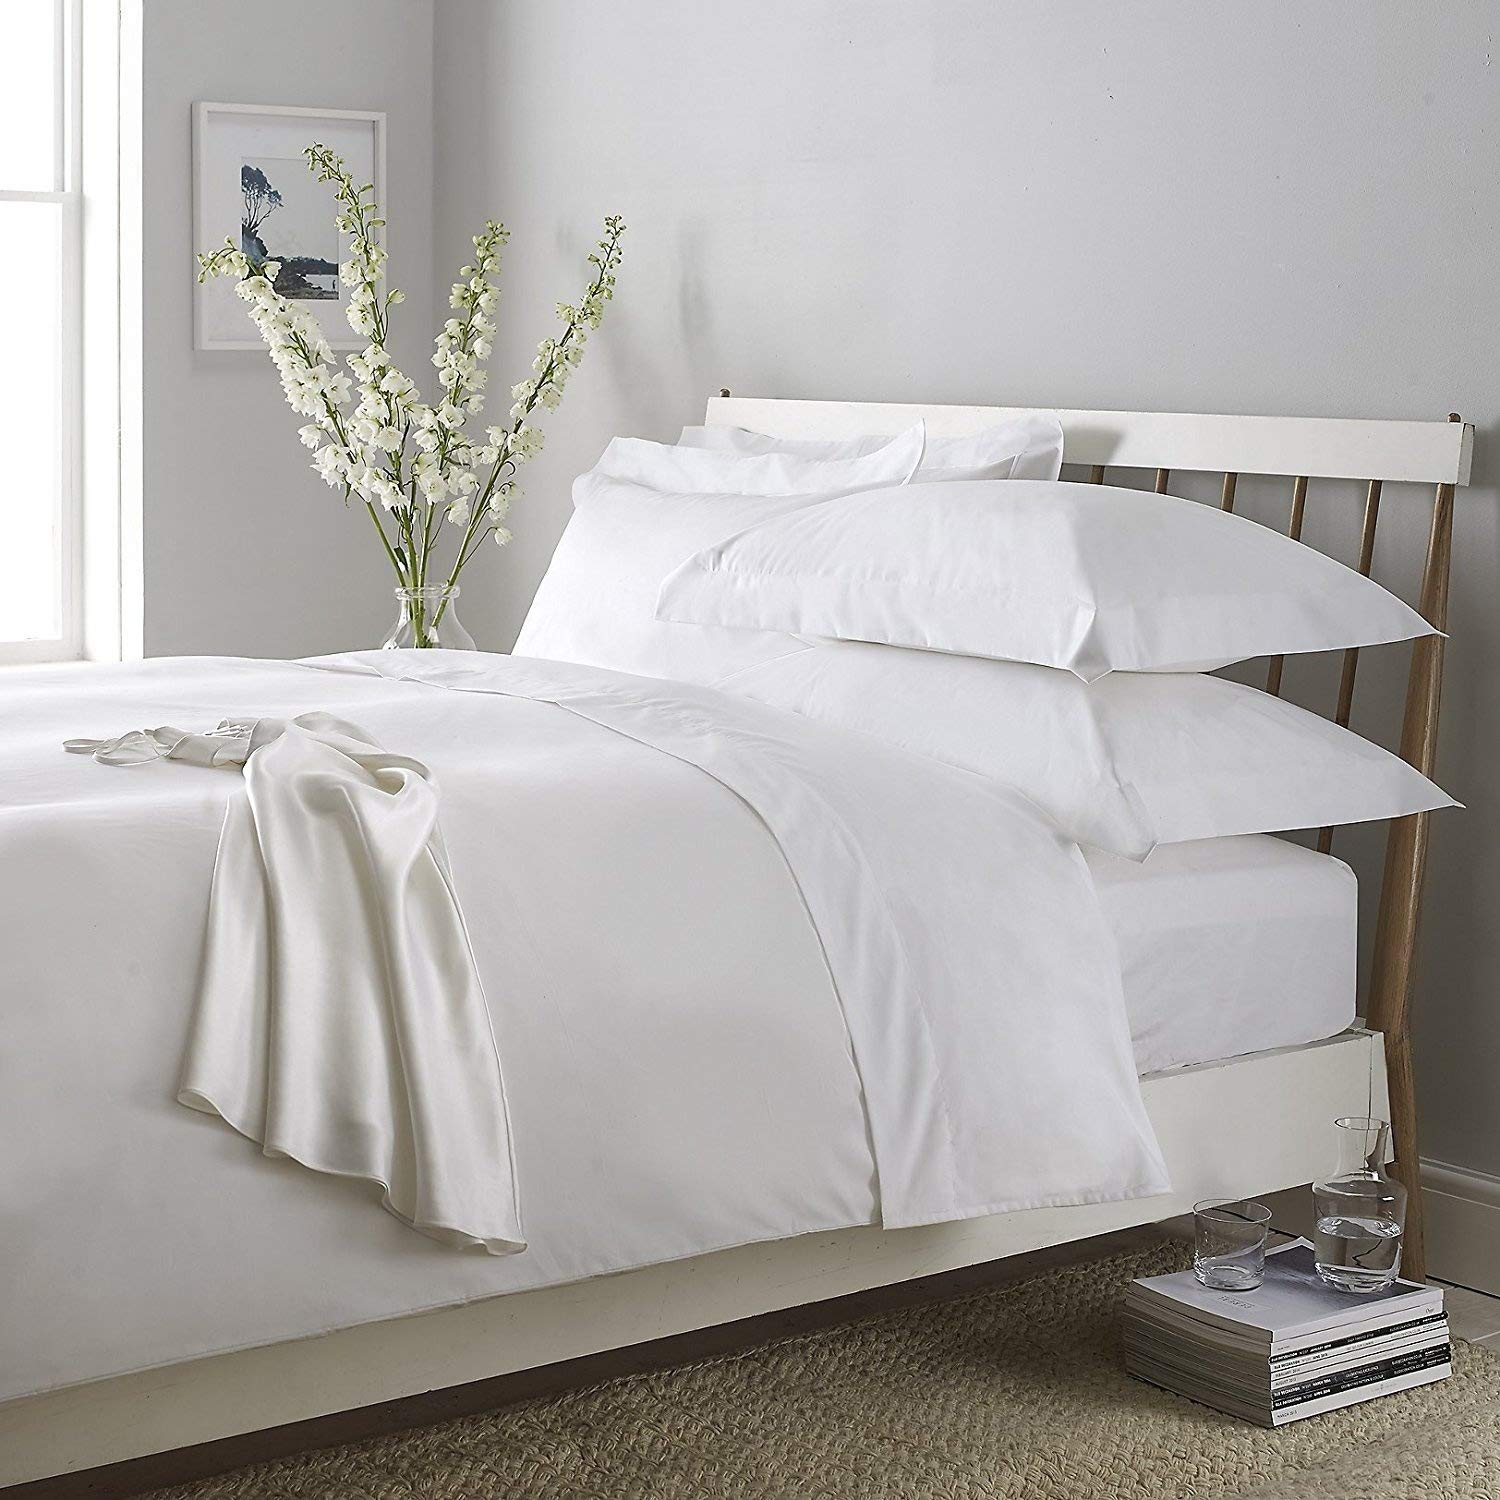 Luxury 100/% Egyptian Cotton Extra Deep Fitted Sheets 200TC Flat Sheets All Sizes